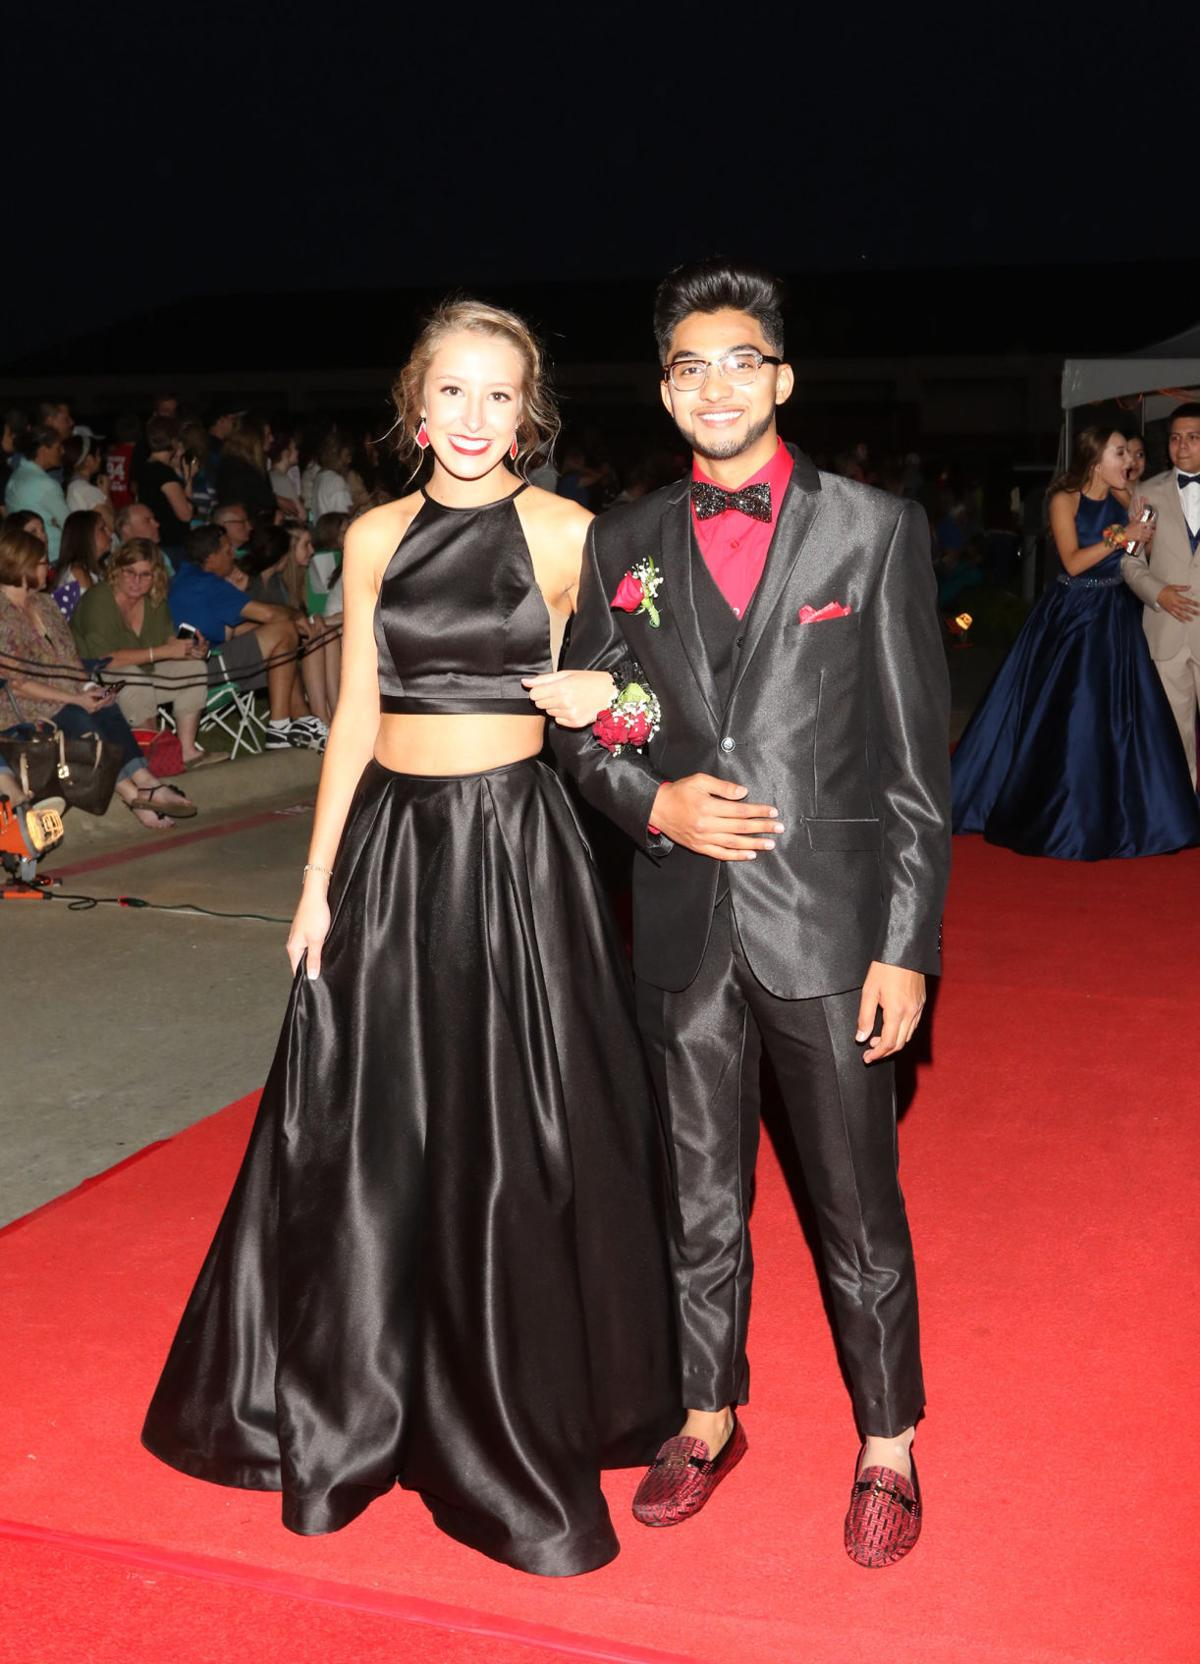 Midway Prom Red Carpet Part 2 May 5 2018 Proms